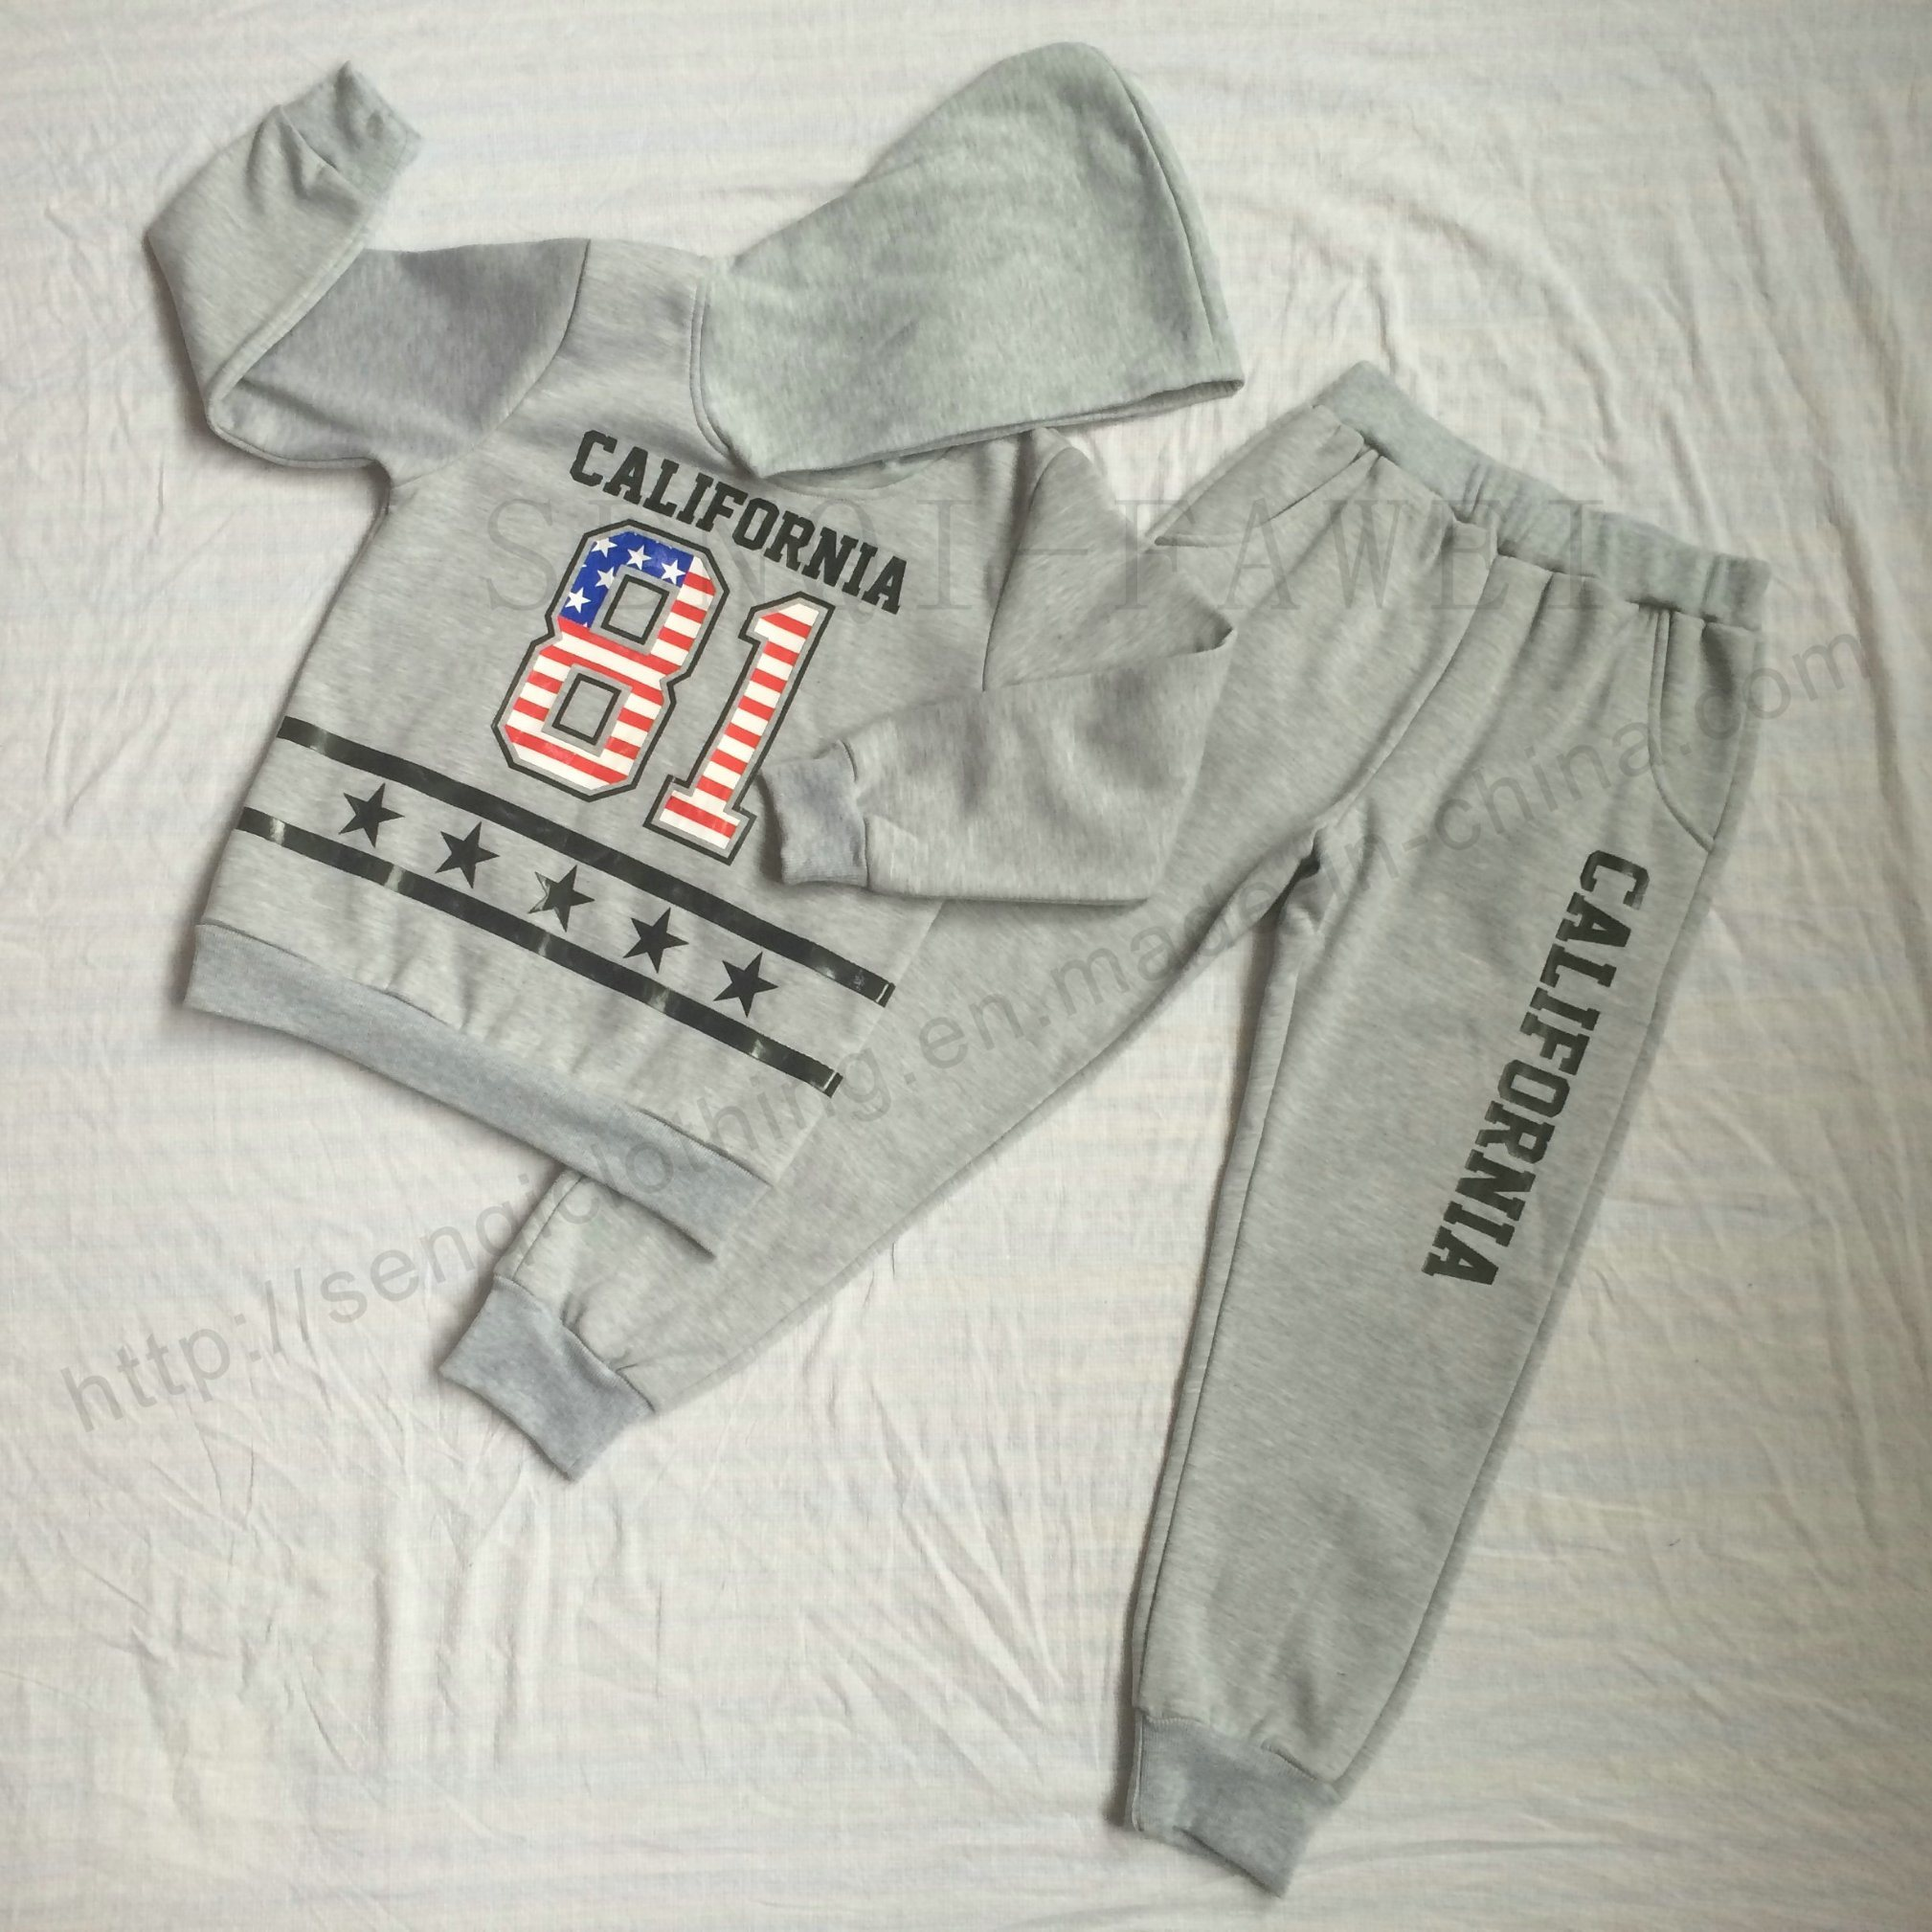 Boy Zip-up Hoodies with Pant Tracksuit Clothes in Sports Wear Clothing Sq-6710